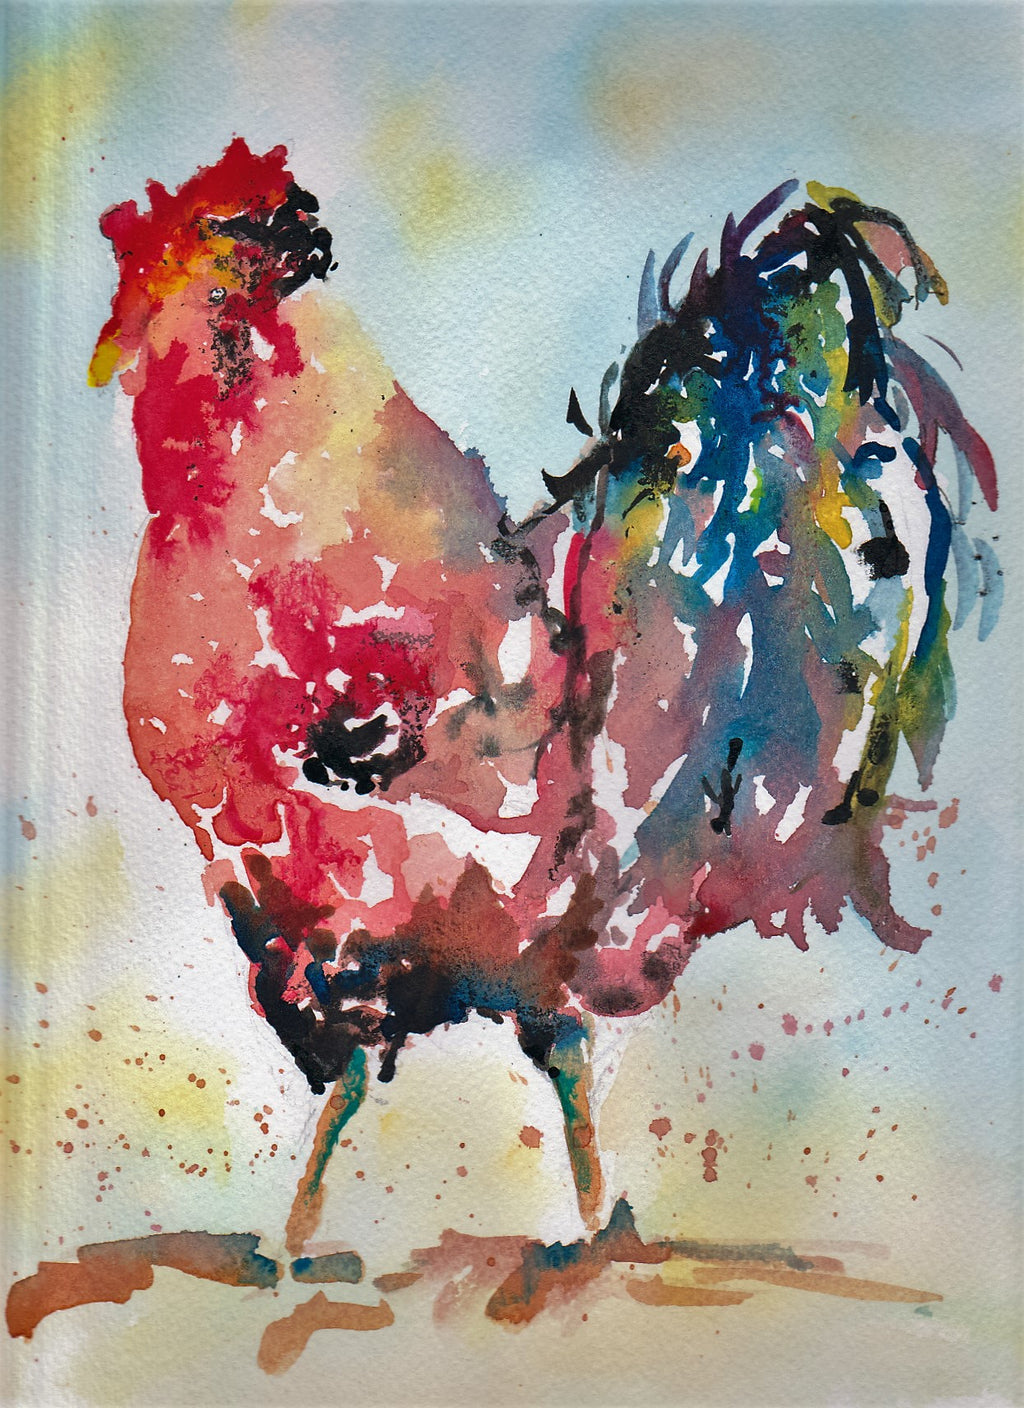 Watercolour multicolour cockerel art print